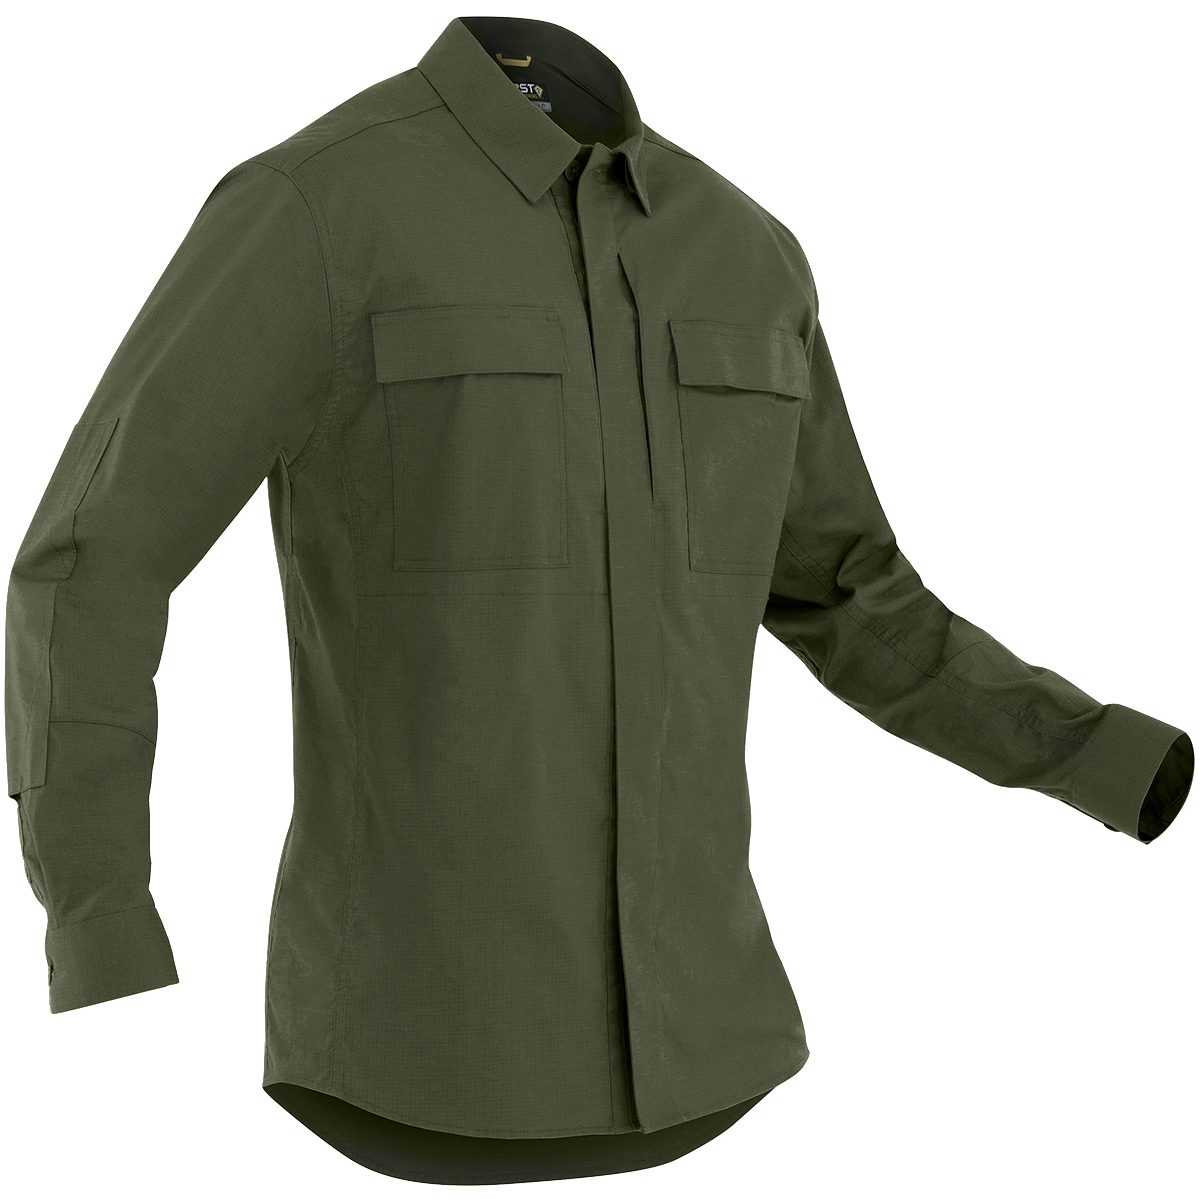 b57cb2d4837 Details about First Tactical Mens Tactix Long Sleeve BDU Shirt Hunting  Ripstop Top OD Green